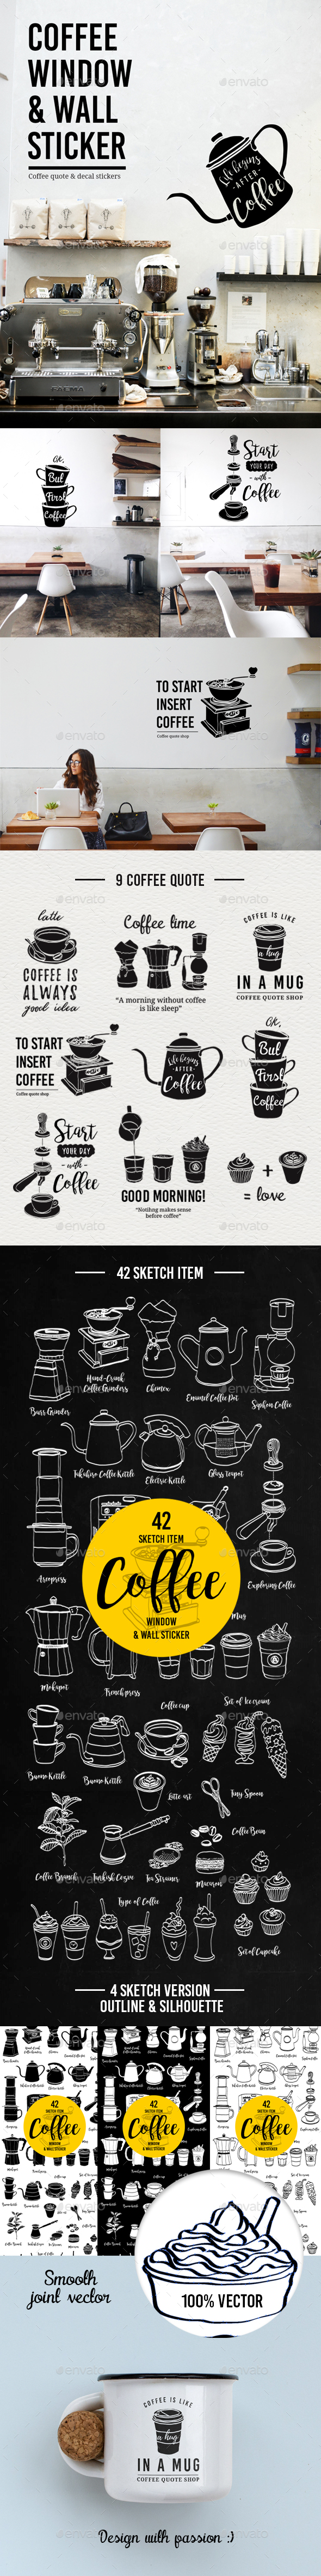 Coffee Window and Wall Stickers - Food Objects